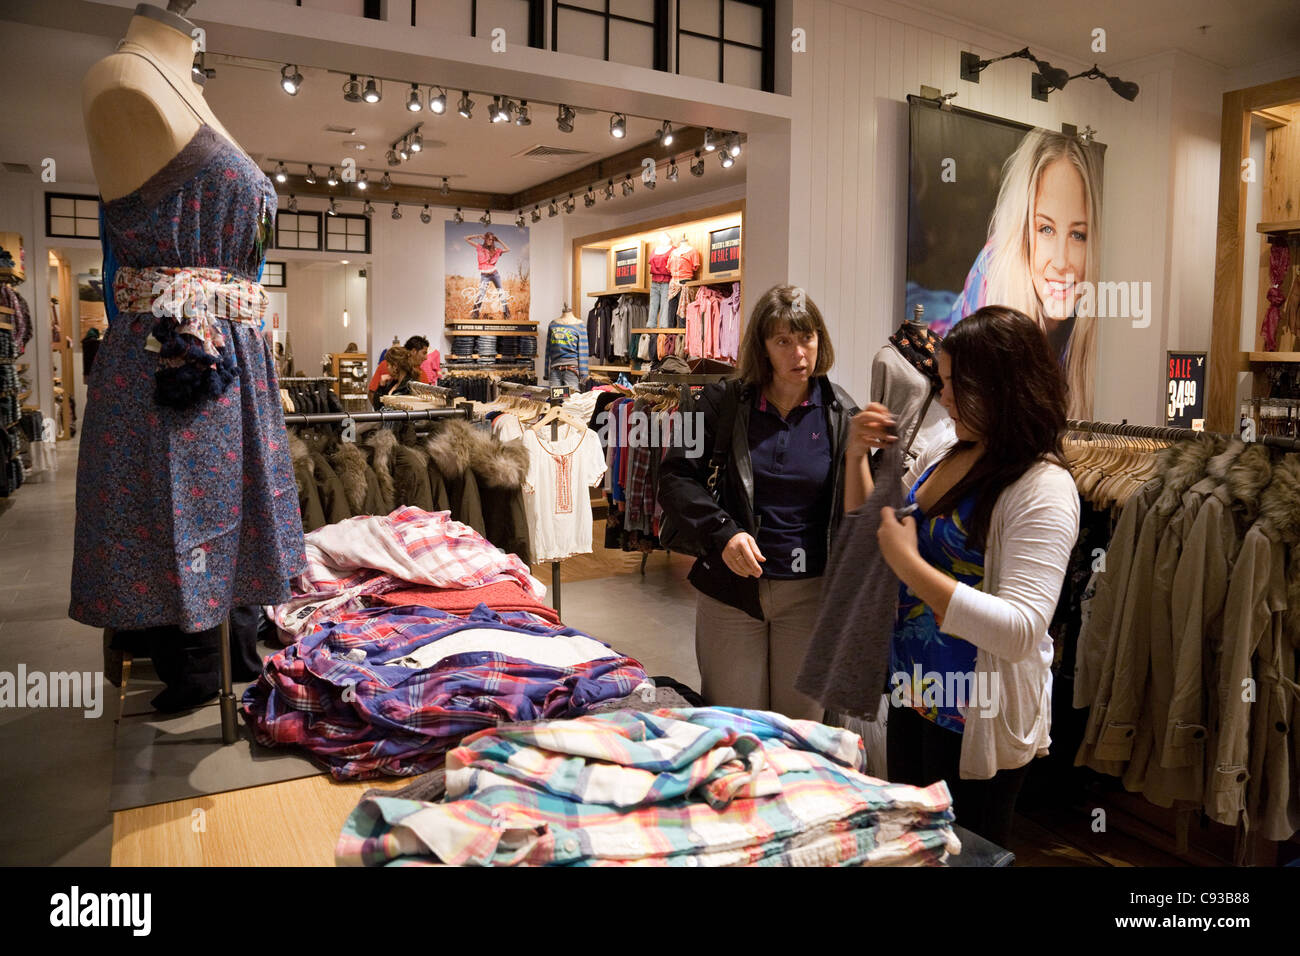 American Eagle Outfitters Store Montgomery Mall Washington DC USA